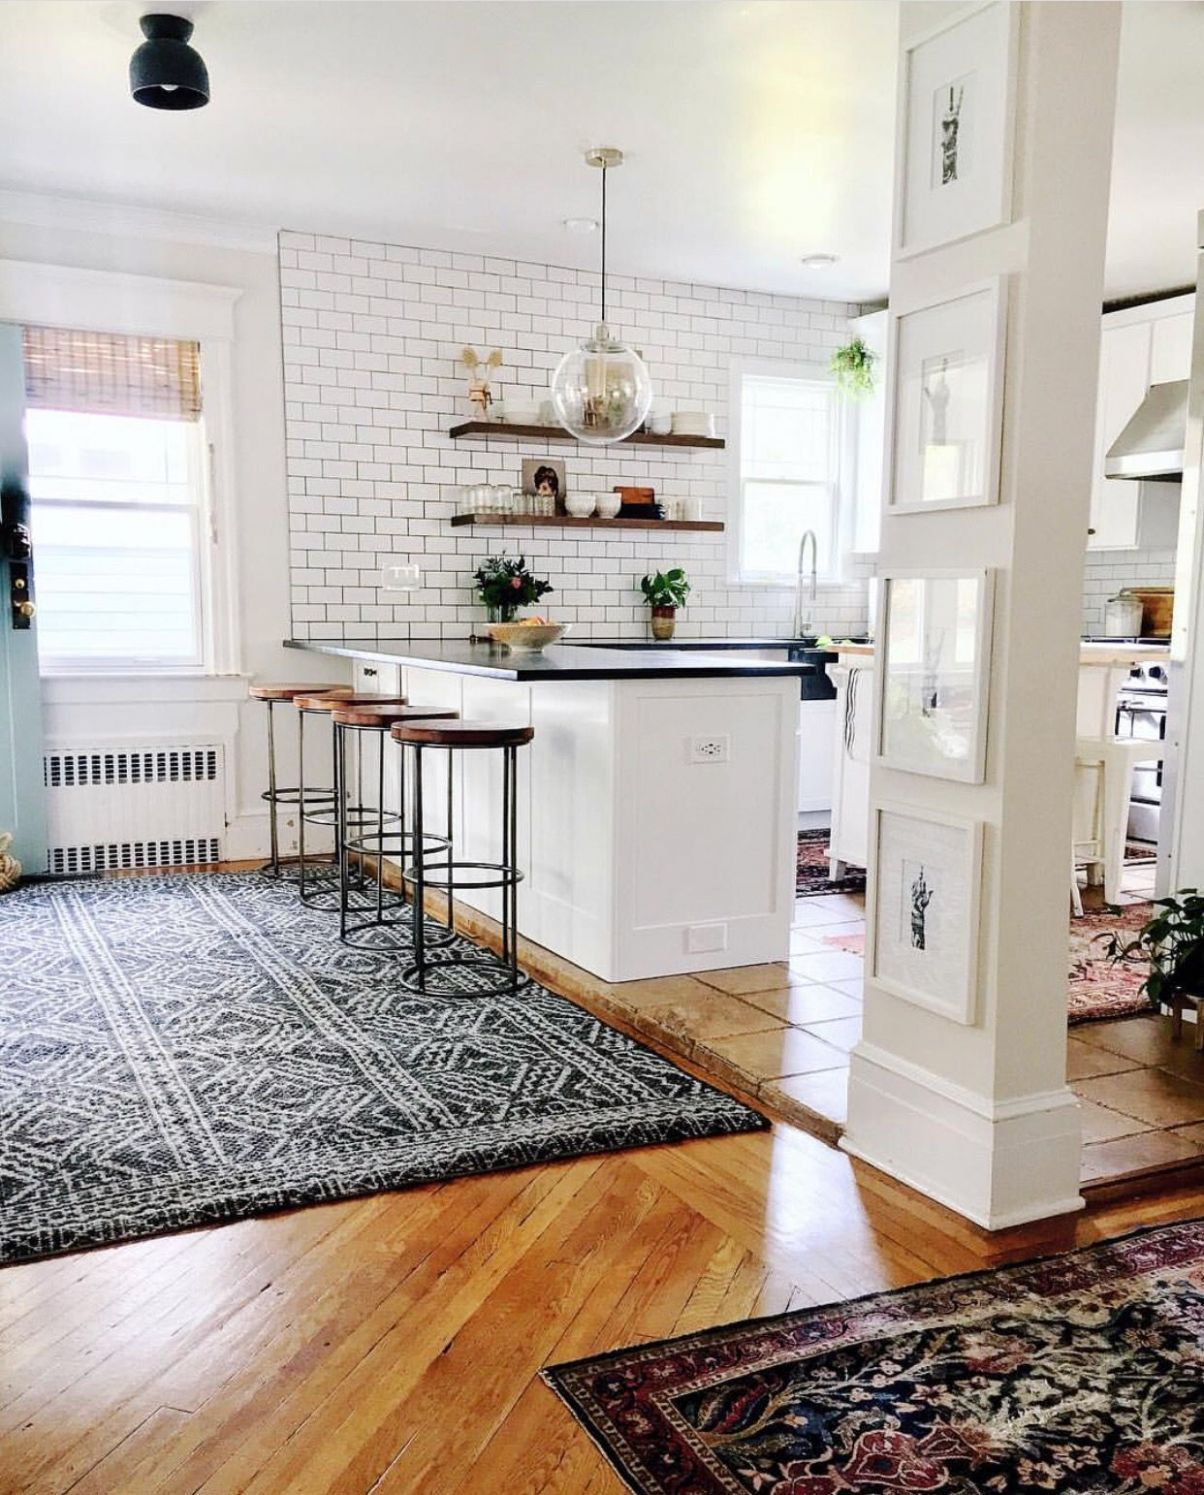 Captivating Simple Tips for Kitchen Frames and Decorations | Open ..